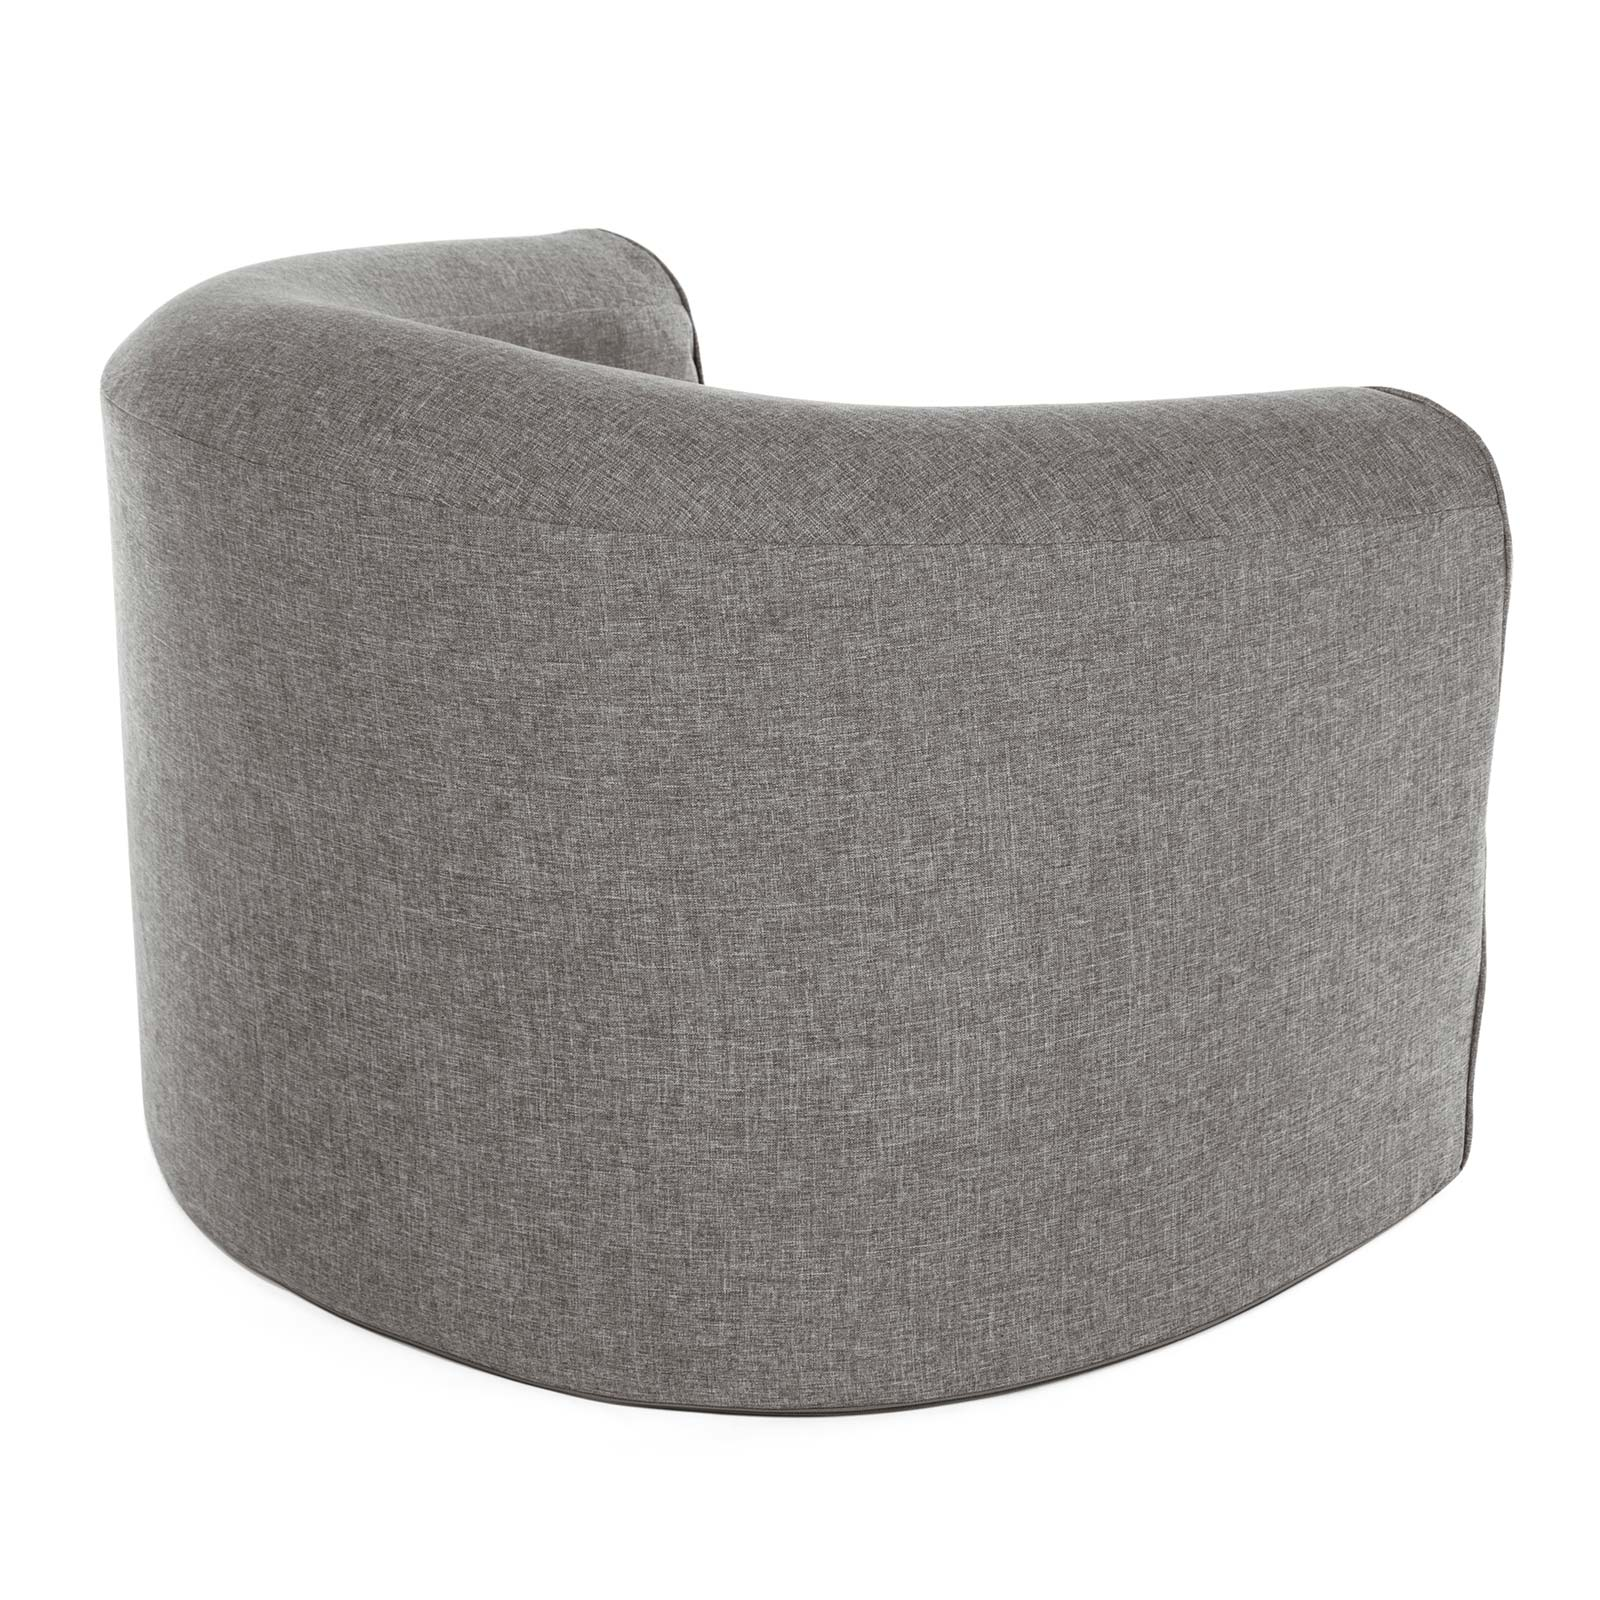 Rear view of the pop lounge foam armchair in grey linen look fabric